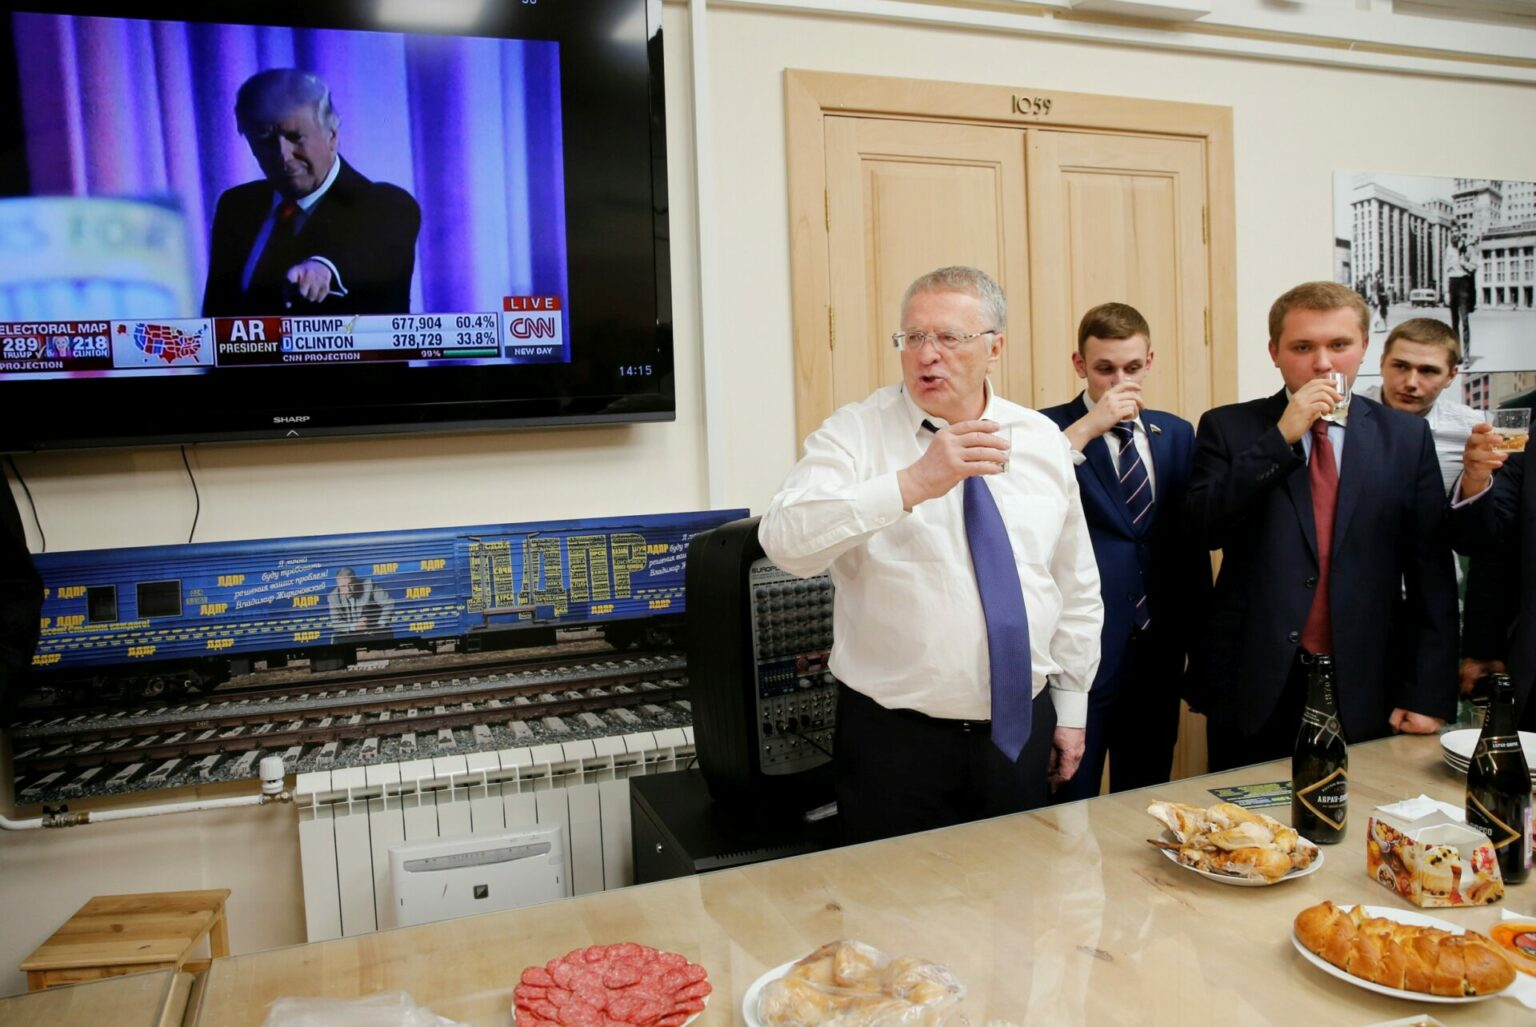 Vladimir Zhirinovsky celebrates Donald Trump s election as president by drinking sparkling wine with other party members during a break in the session of the State Duma, the lower house of parliament, in Moscow, Russia, November 9, 2016. The Russian attitudes towards Trump have changed ever since.